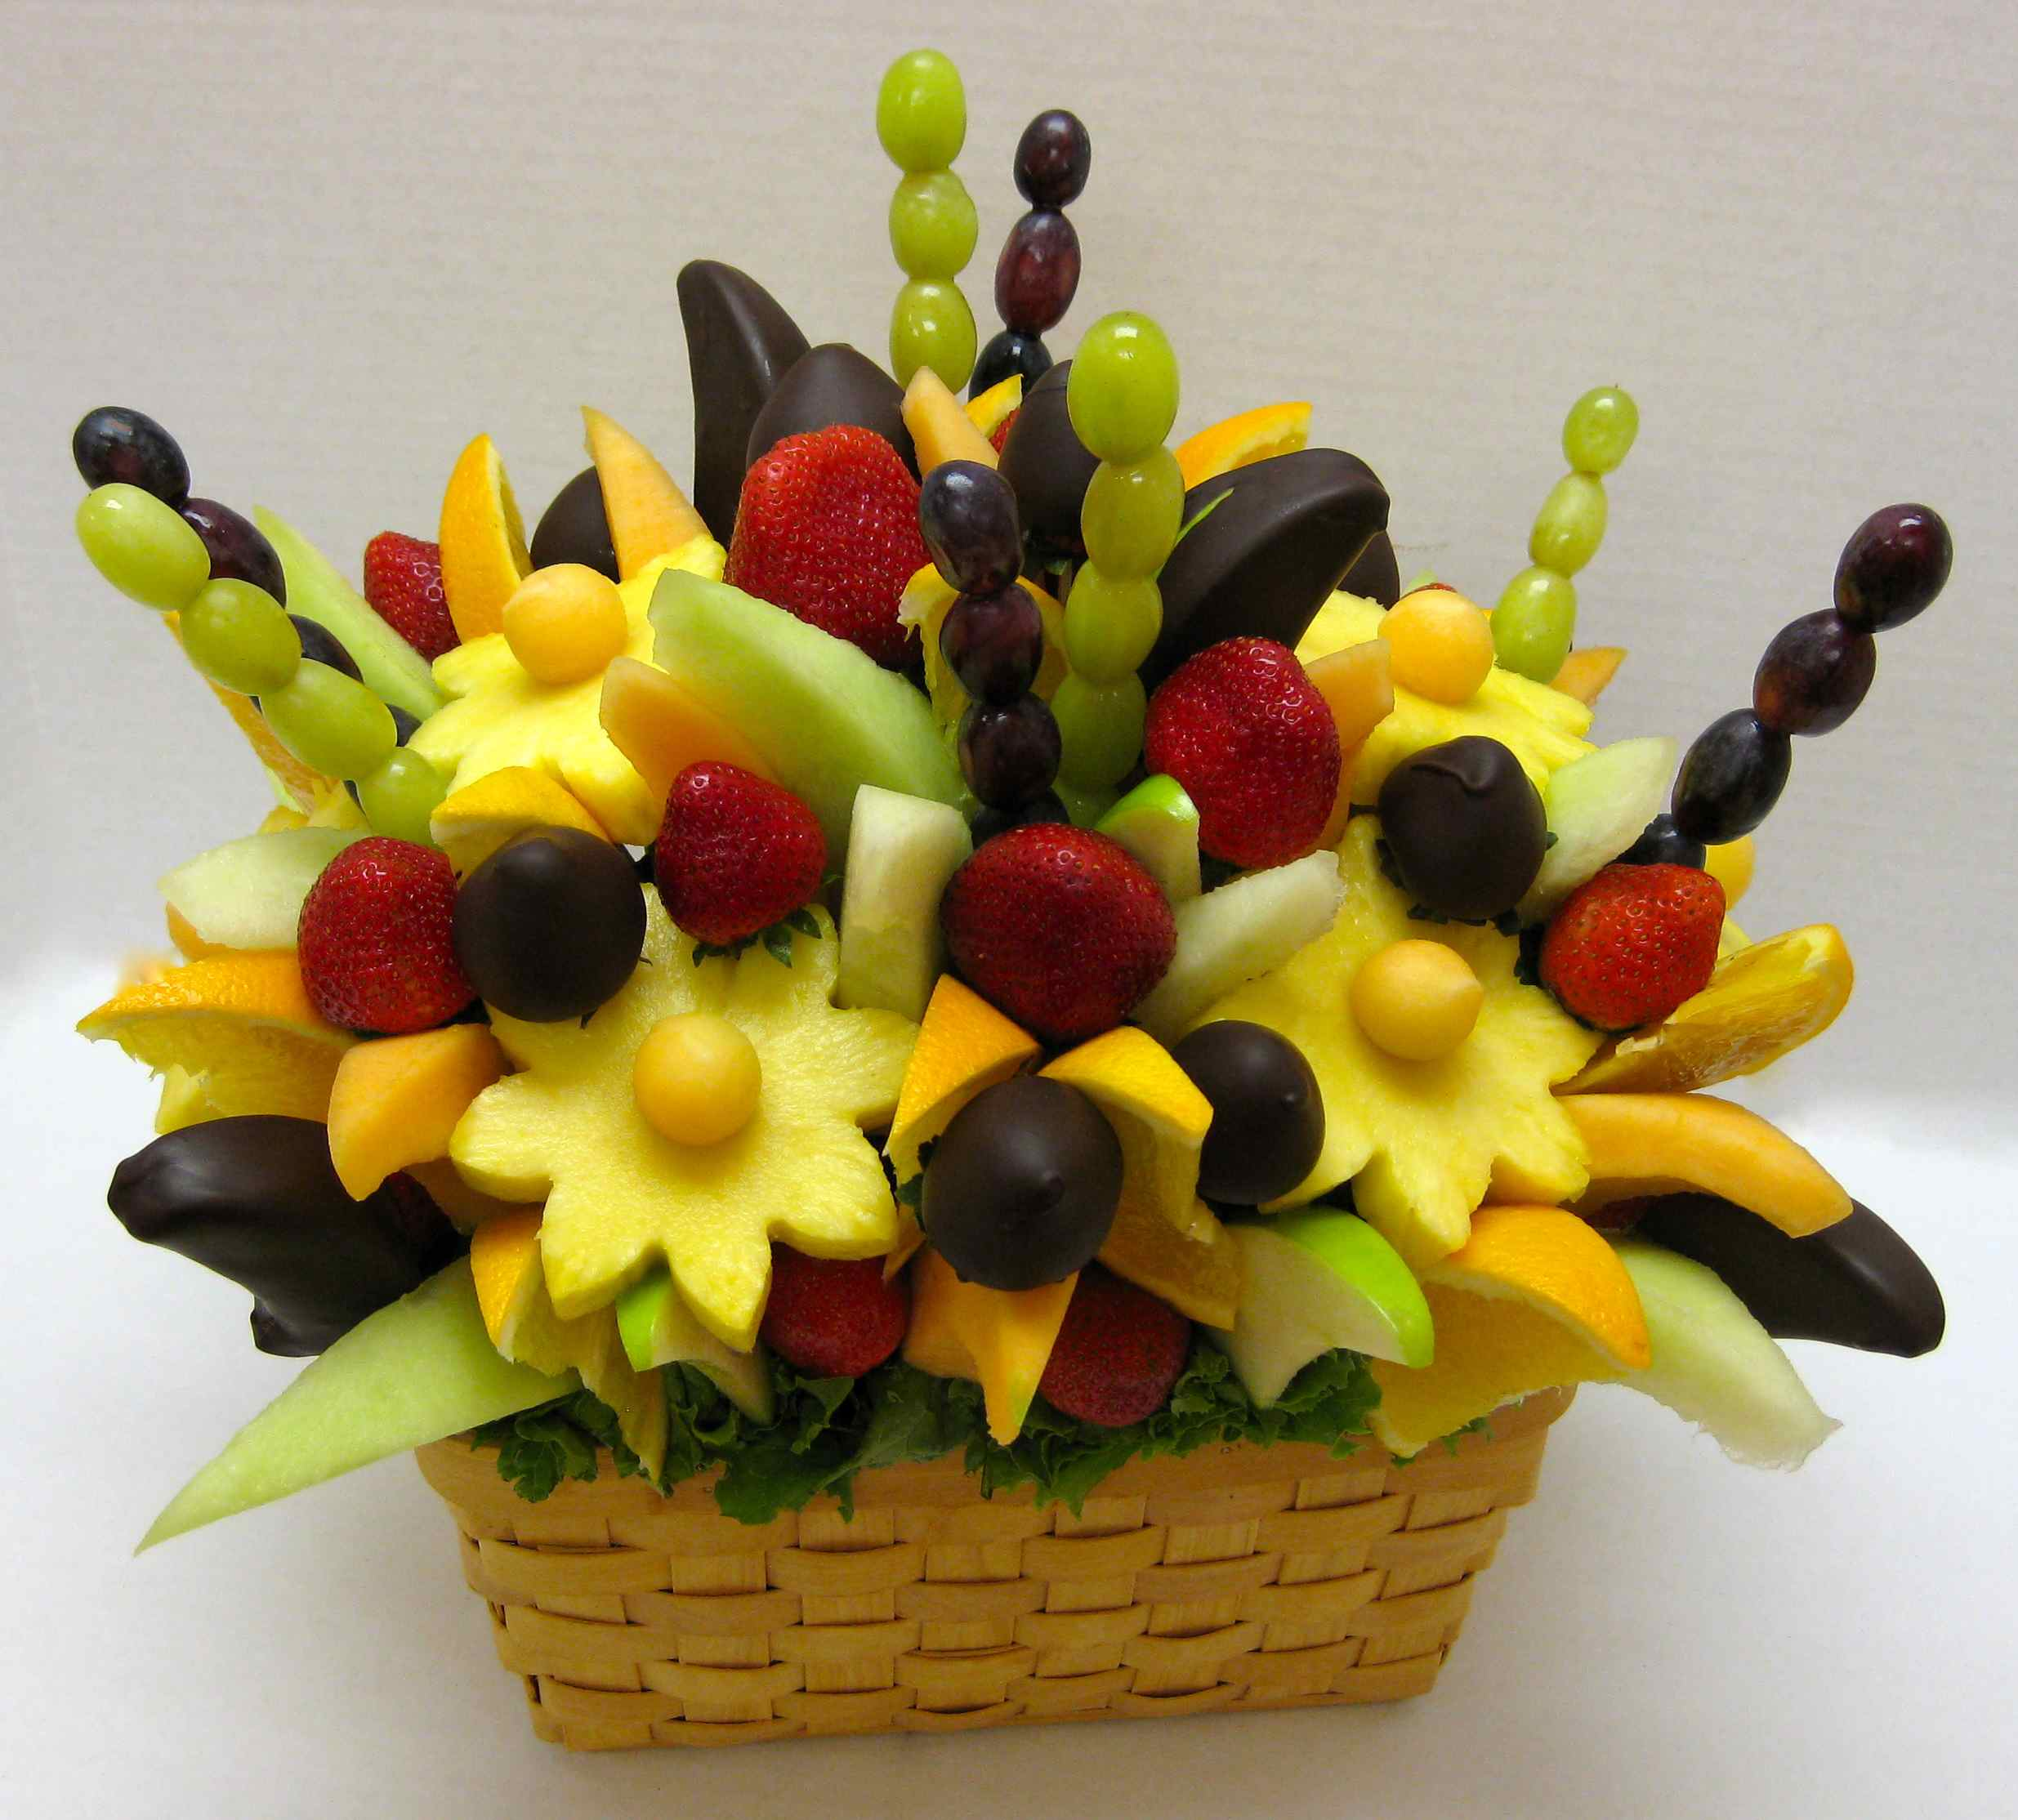 How to make your own edible fruit arrangement crazeedaisee Fruit bouquet